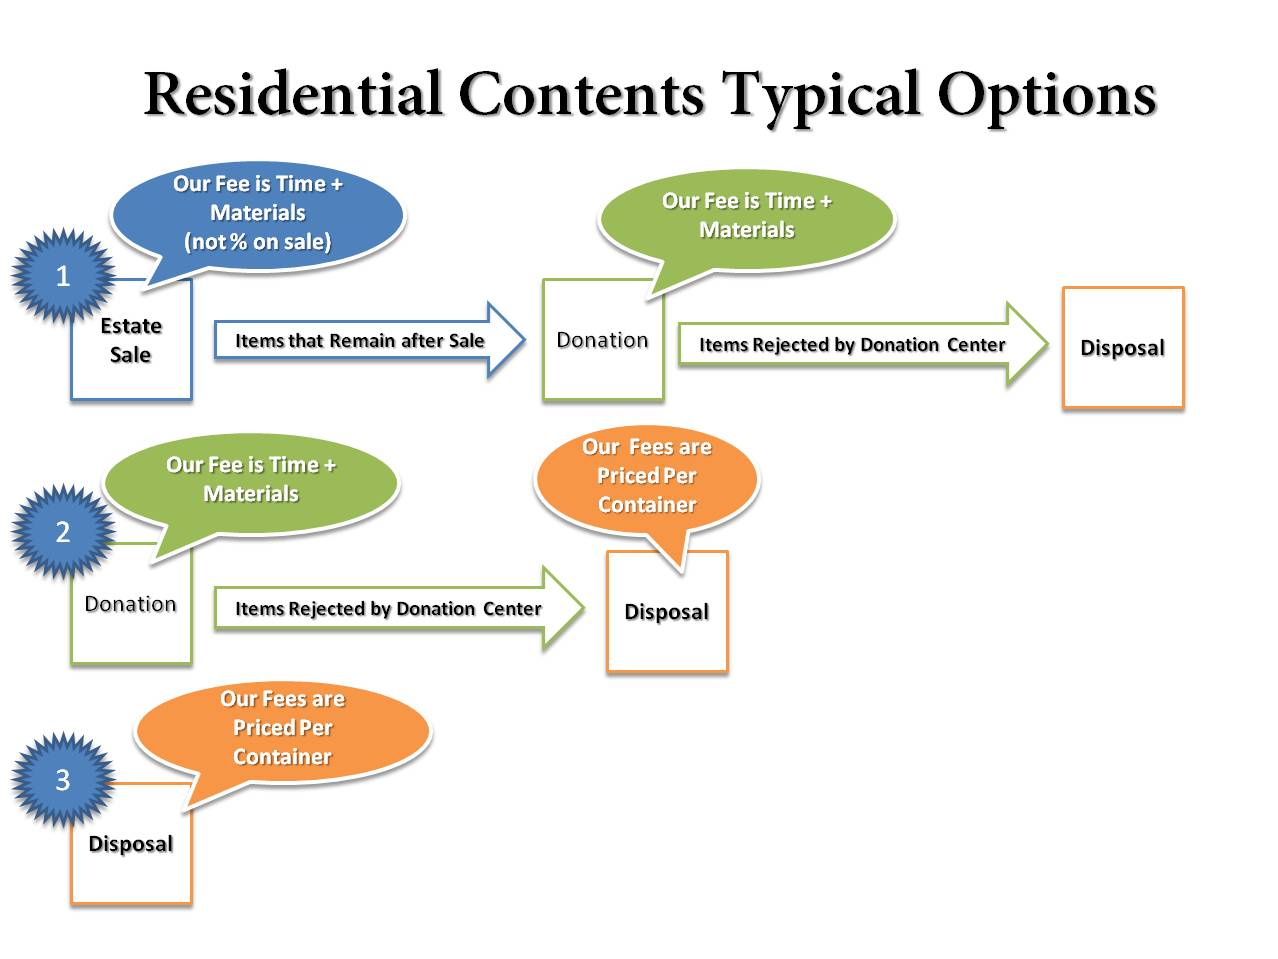 Residential Contents Typical Options